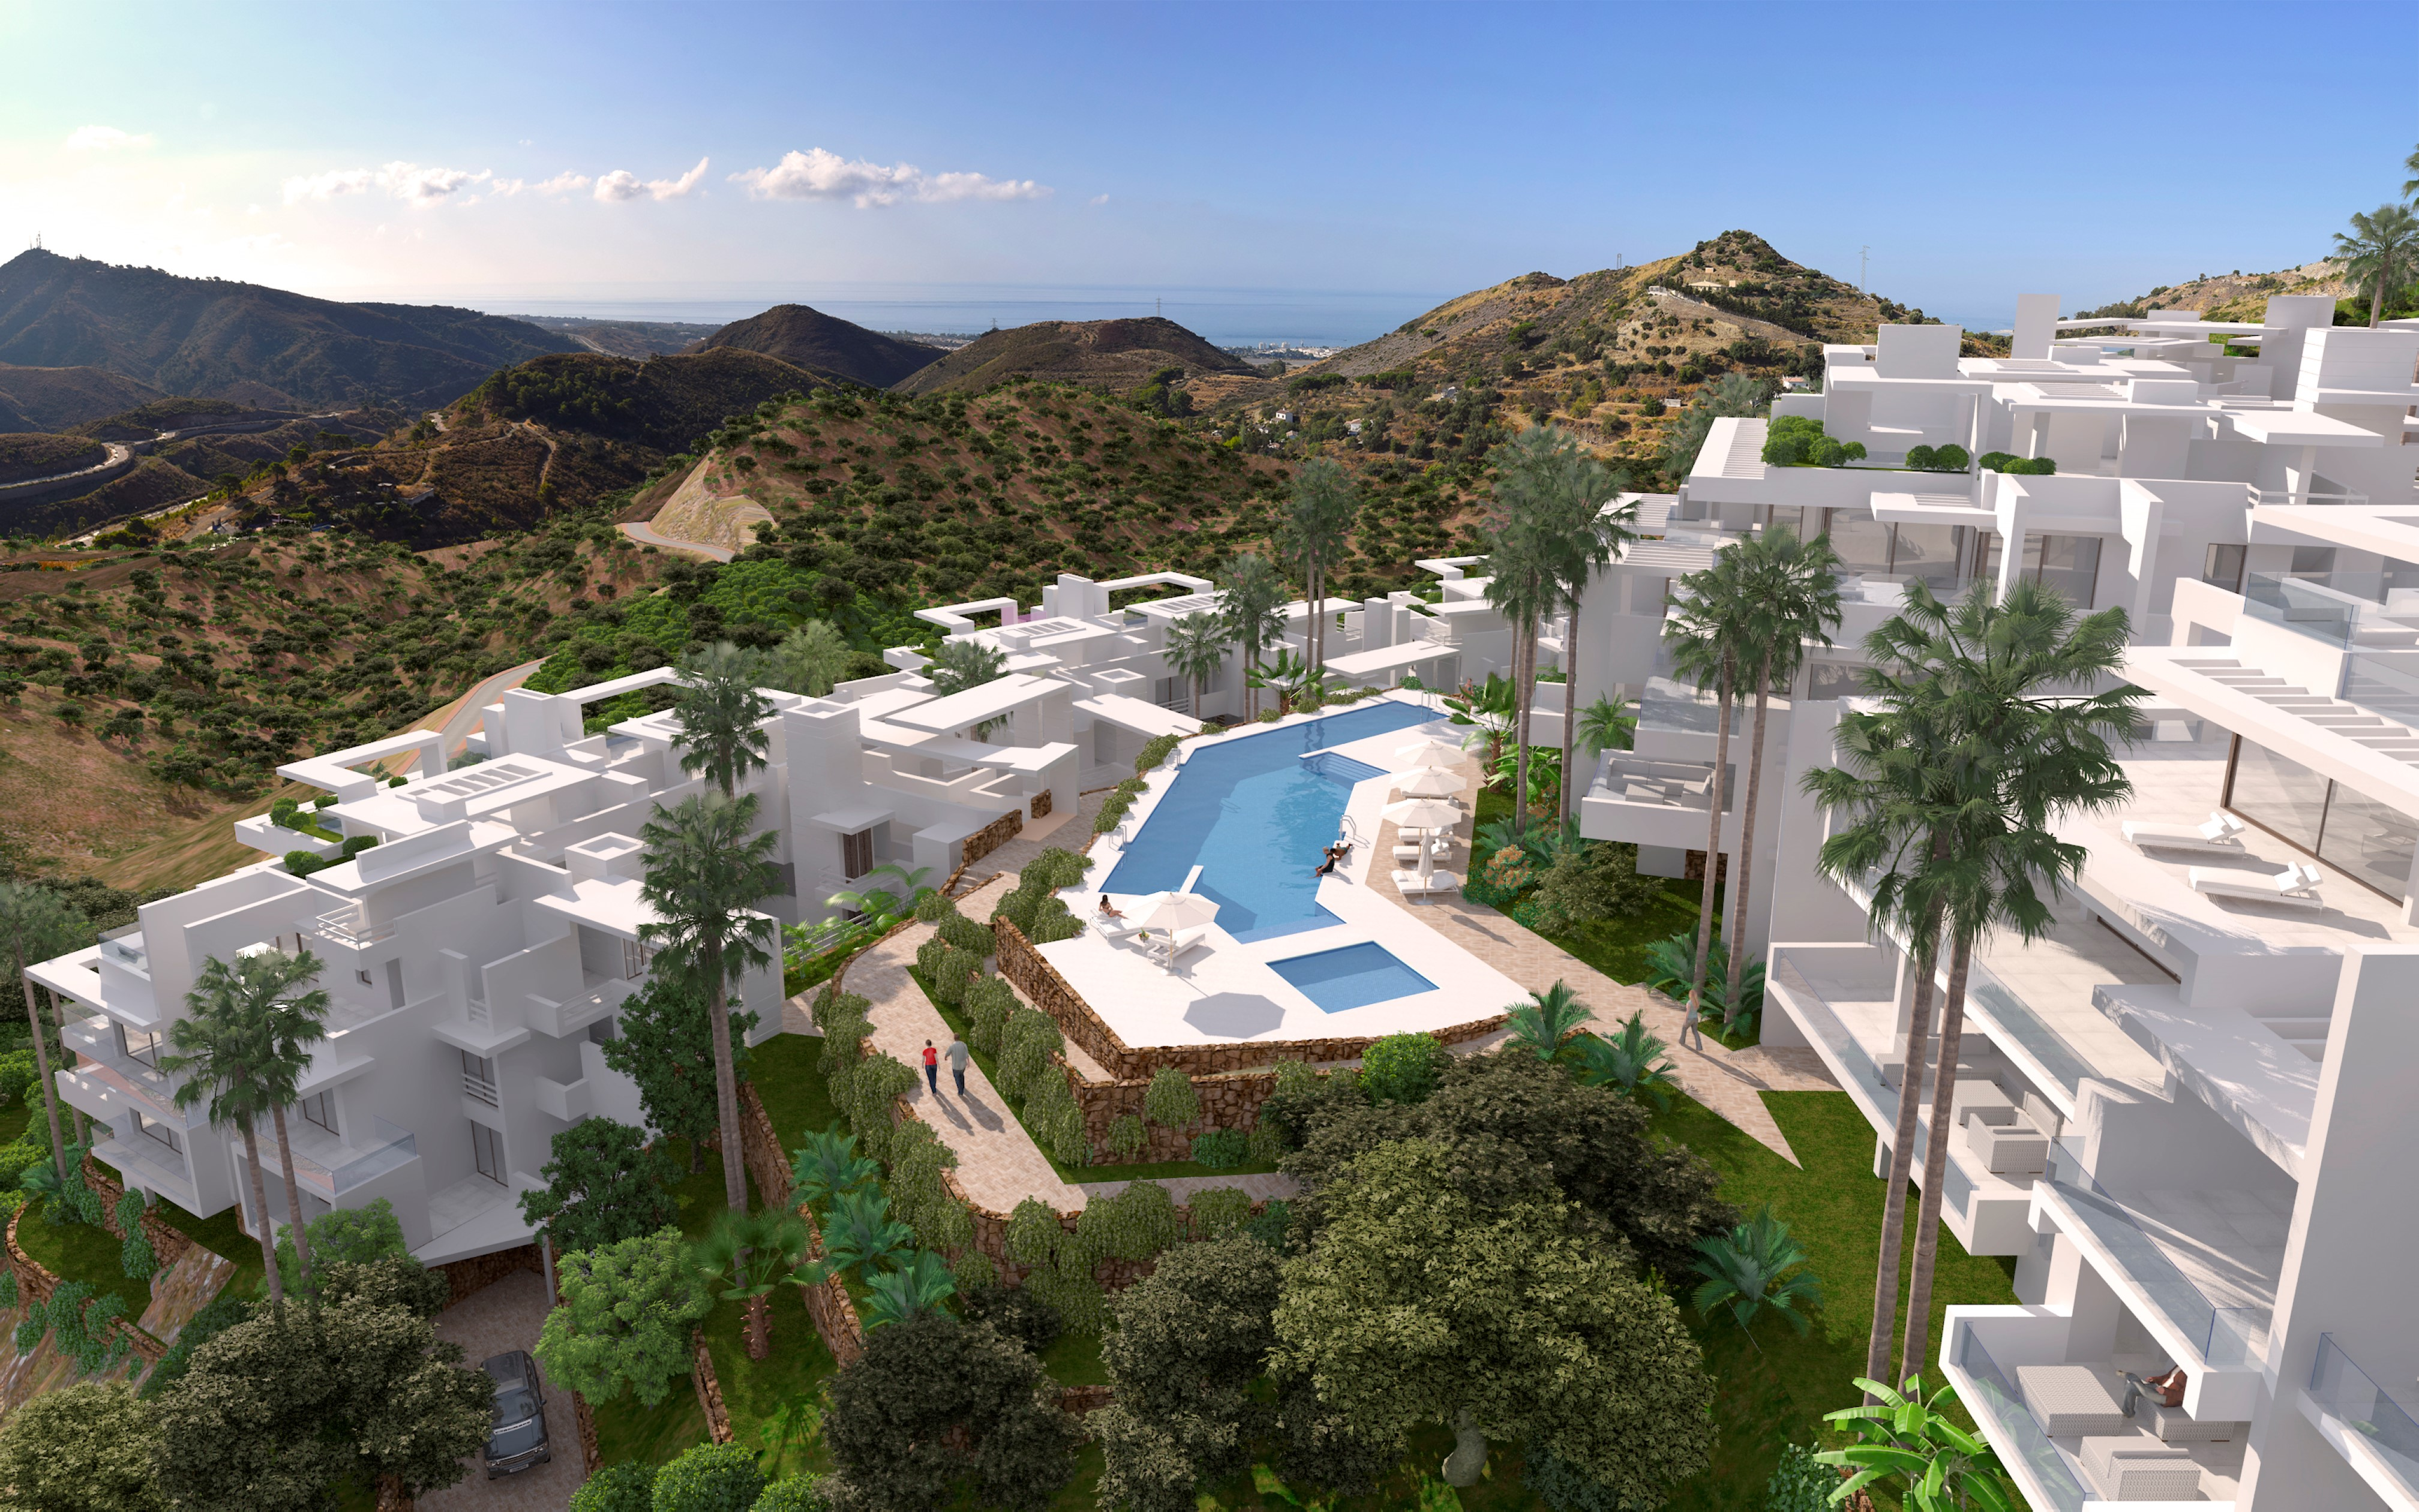 Brand new gated development at 5 minutes from Marbella